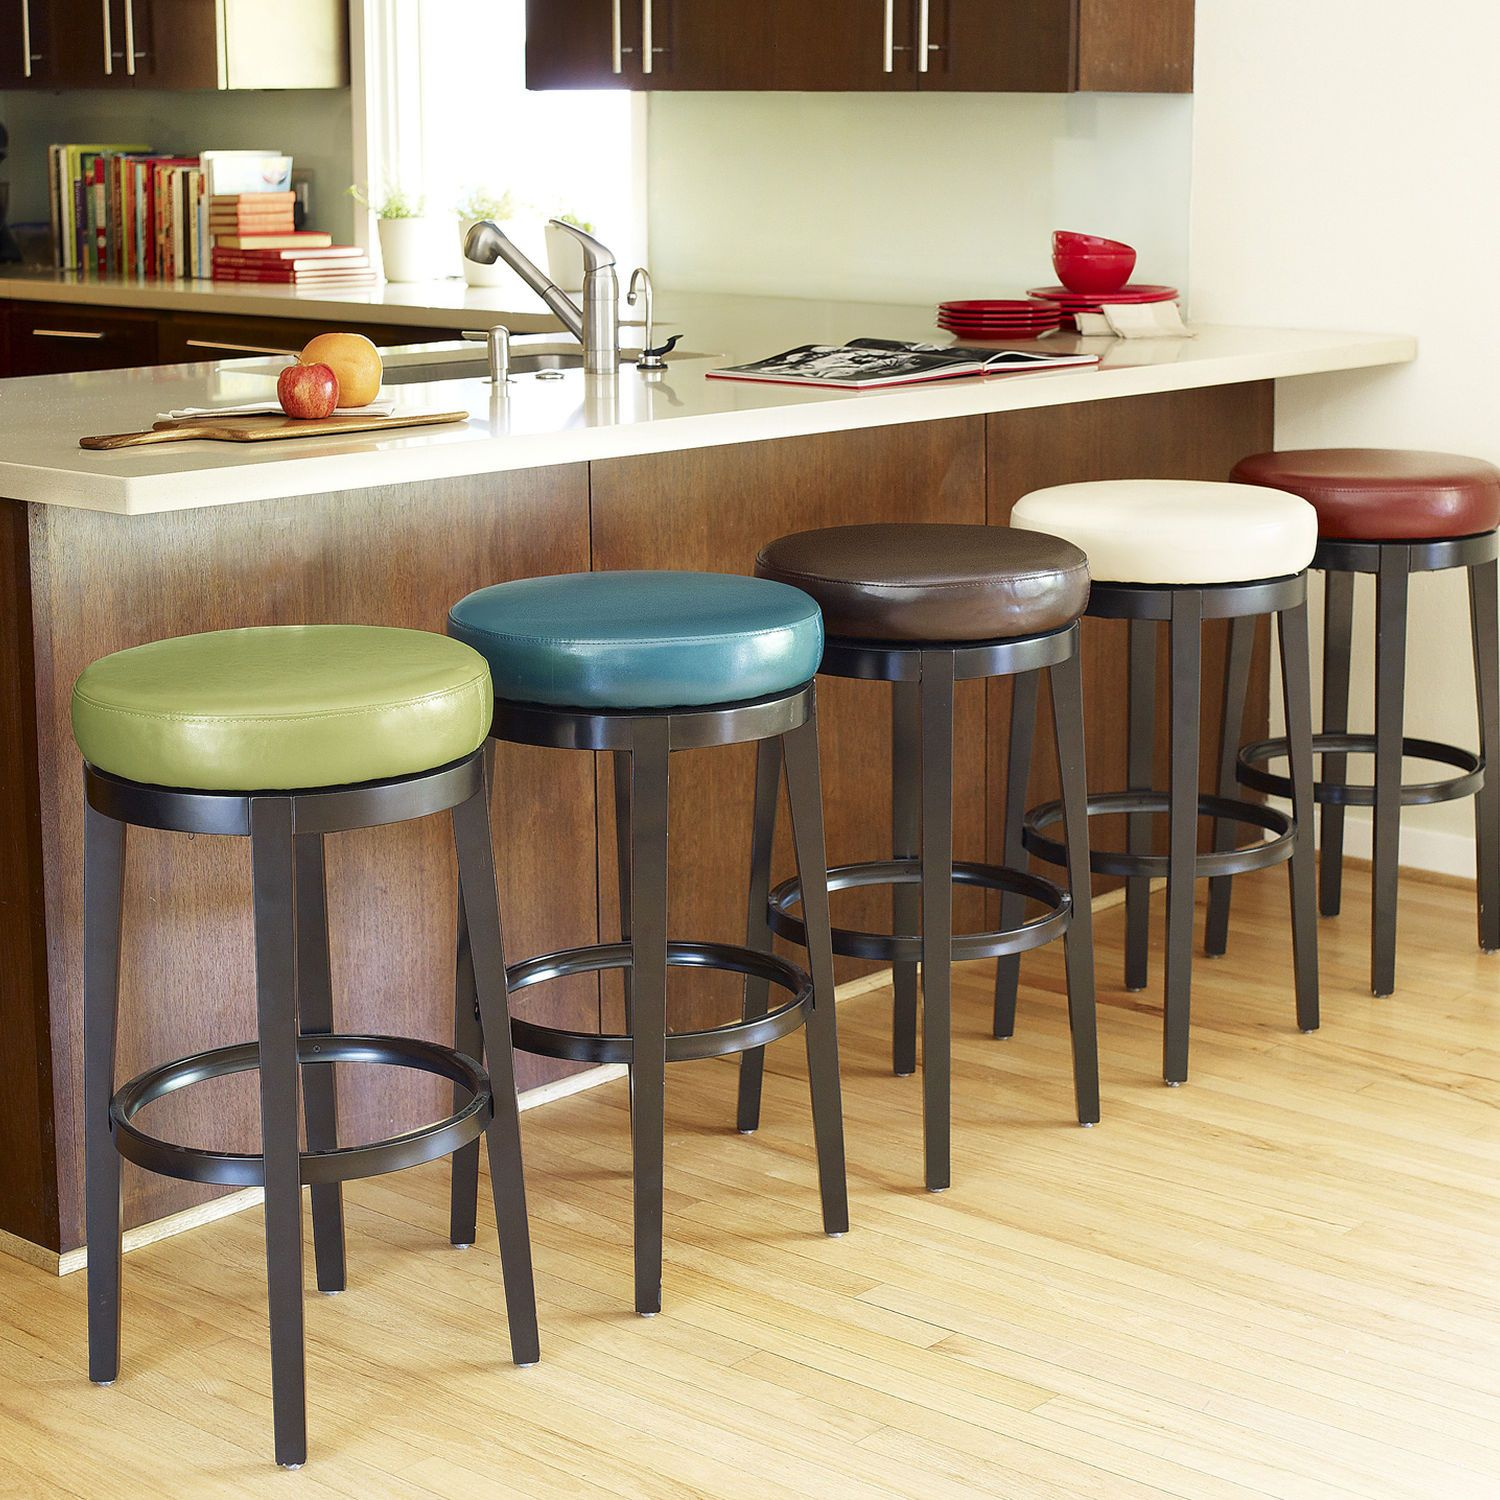 Stratmoor swivel counterstool teal pier1 us dining room furniture sets apartment furniture